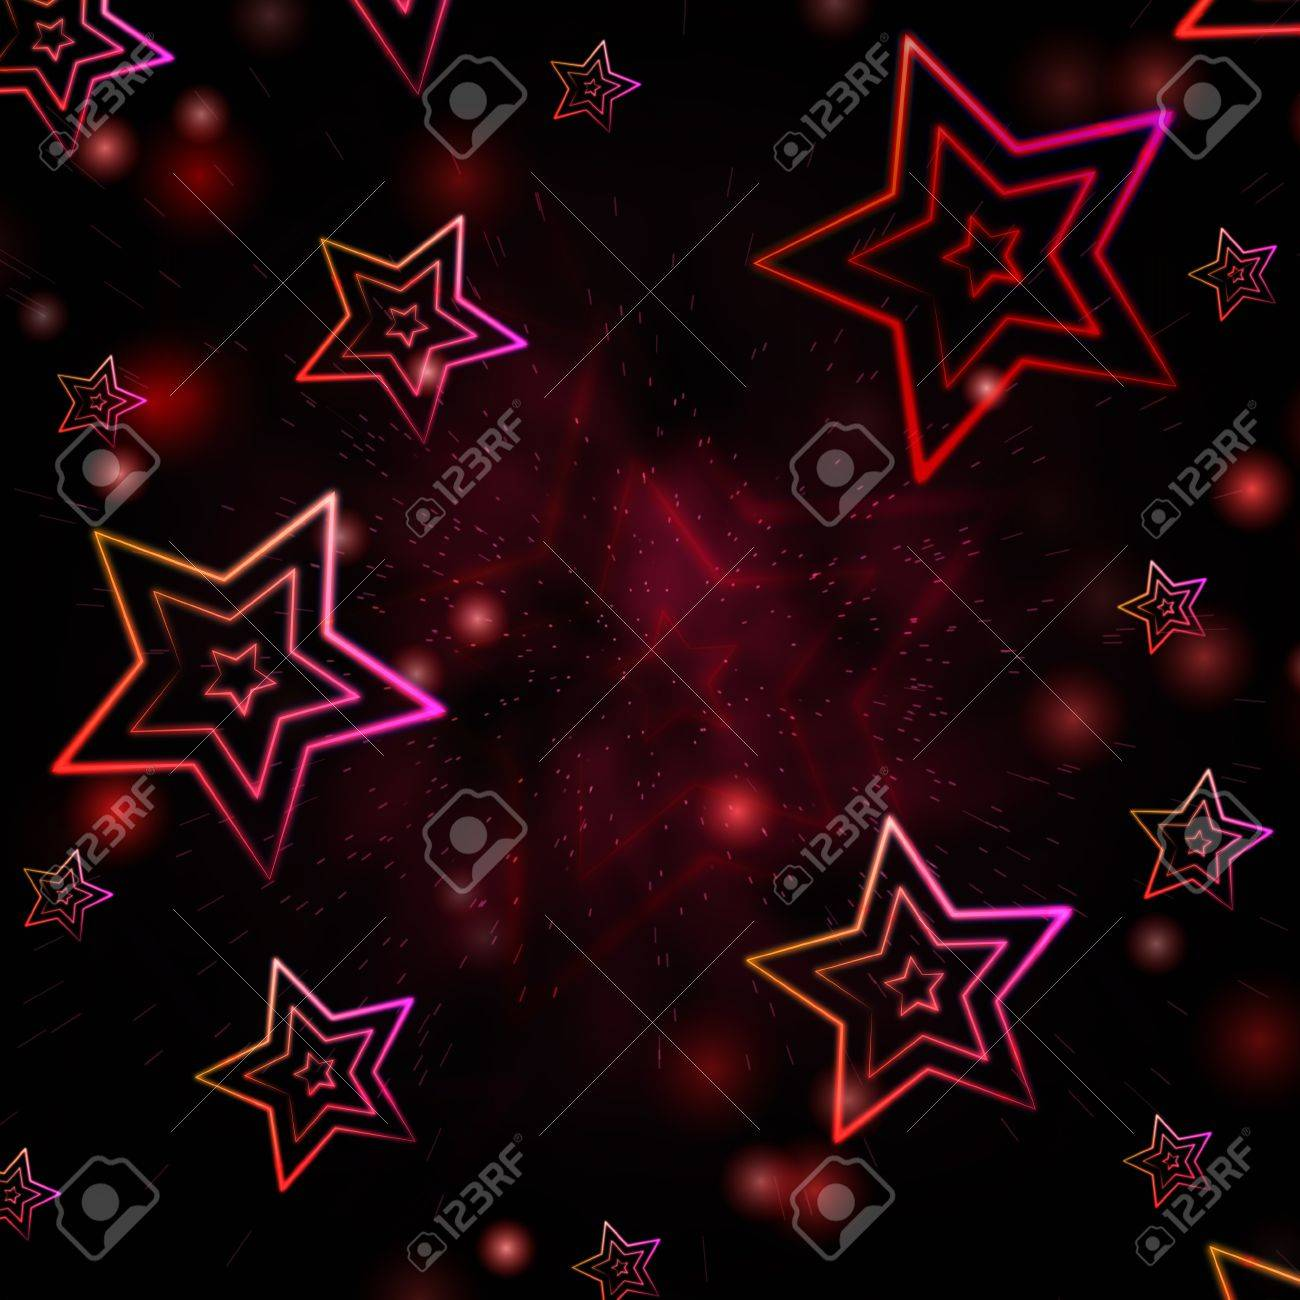 abstract red background with illustrated white stars, christmas card Stock Photo - 16229075